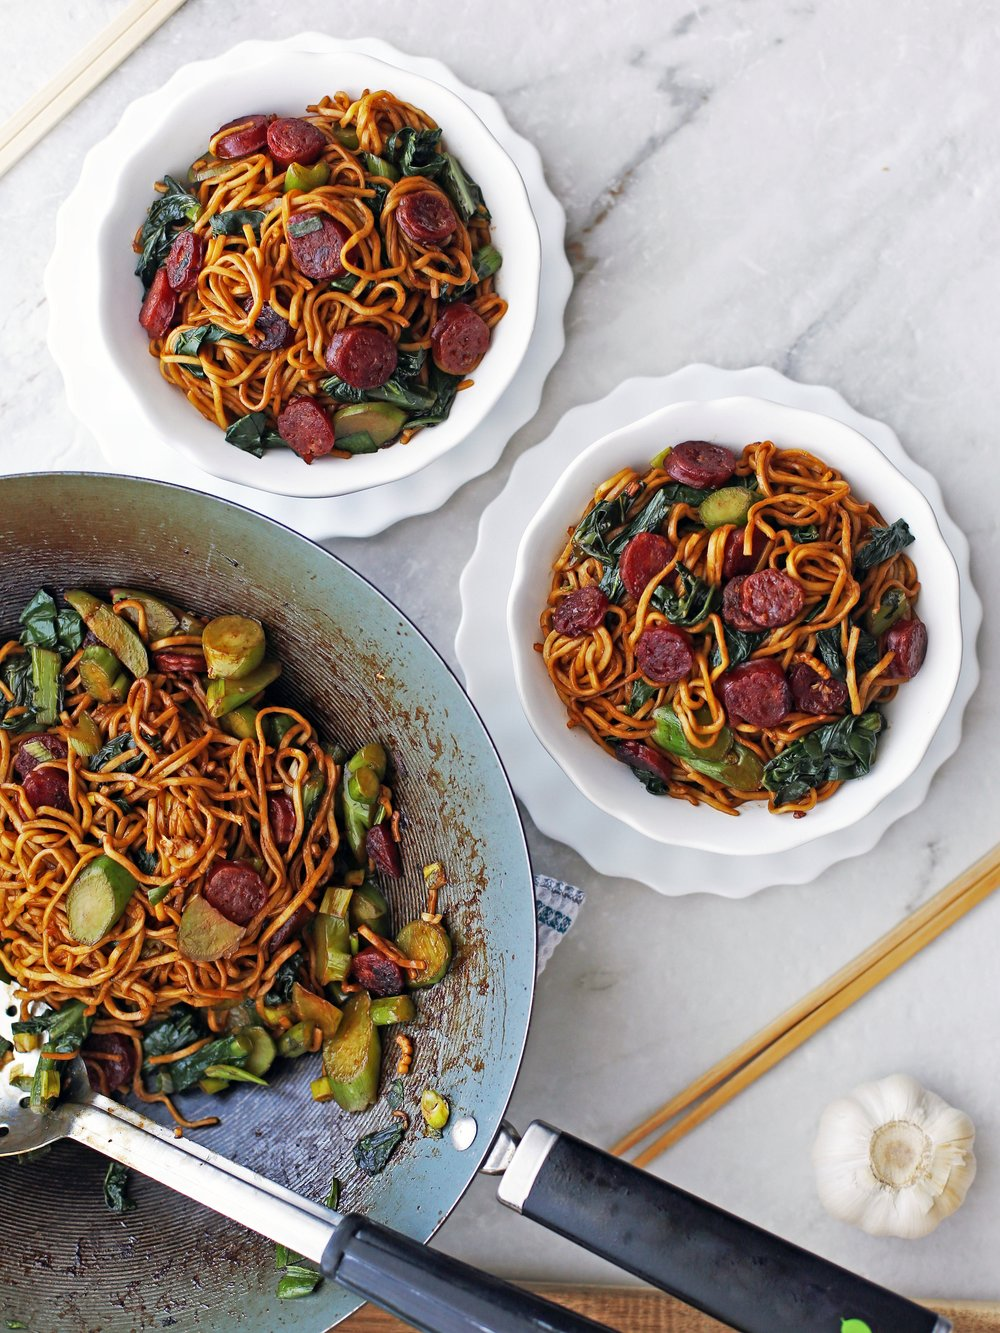 Two bowls of Lo mein noodles with Chinese sausage and gai lan and more in a large wok.